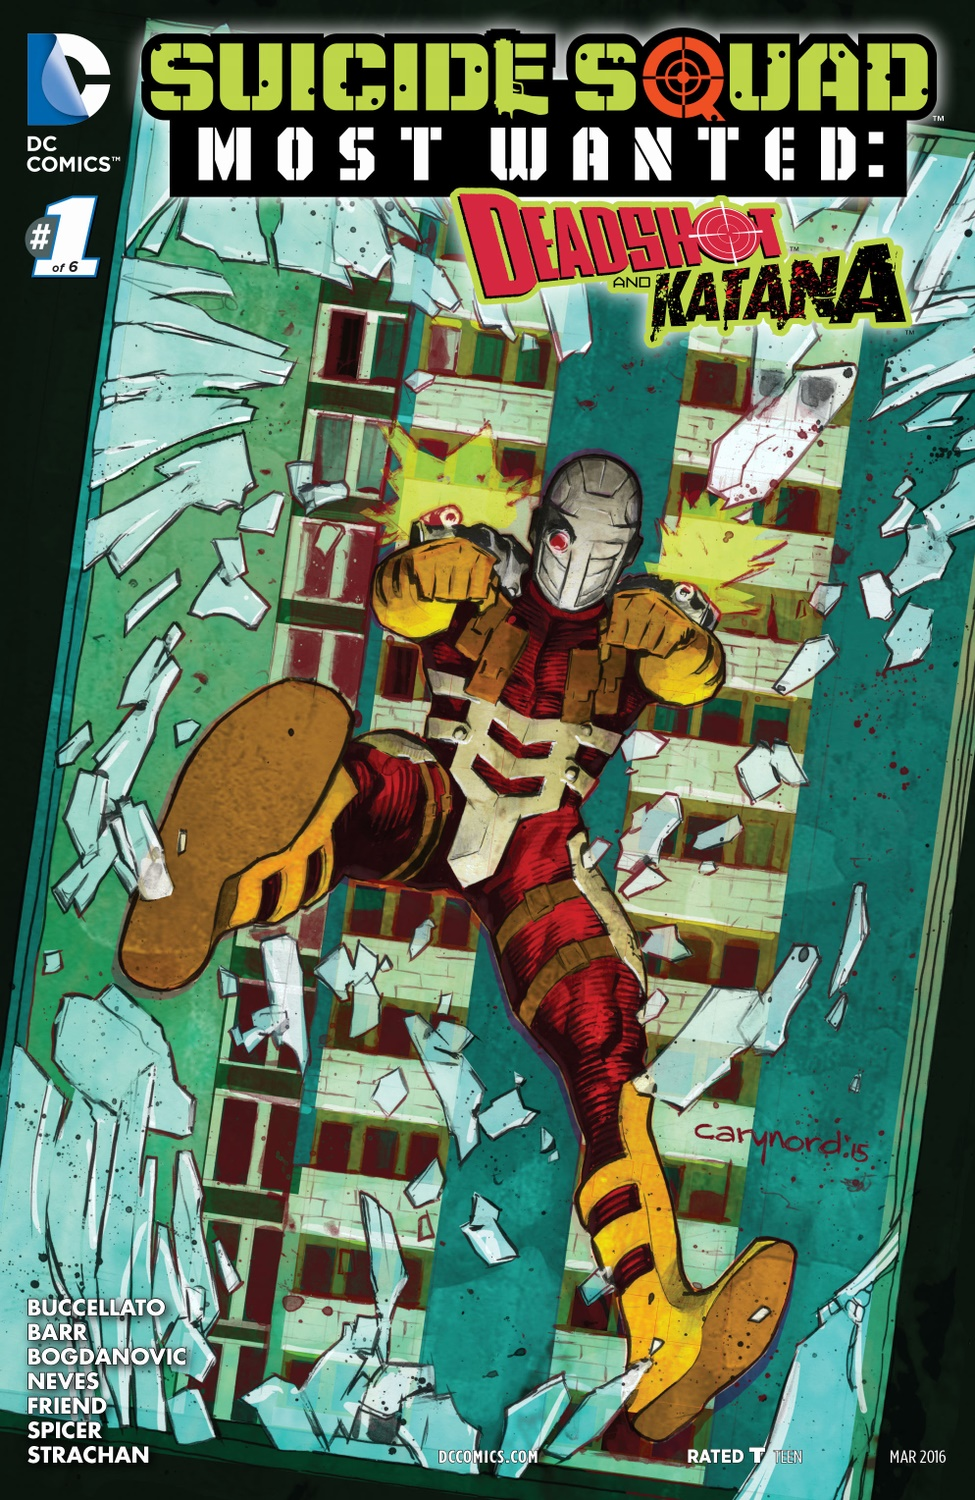 Suicide Squad Most Wanted: Deadshot and Katana (Volumen 1)